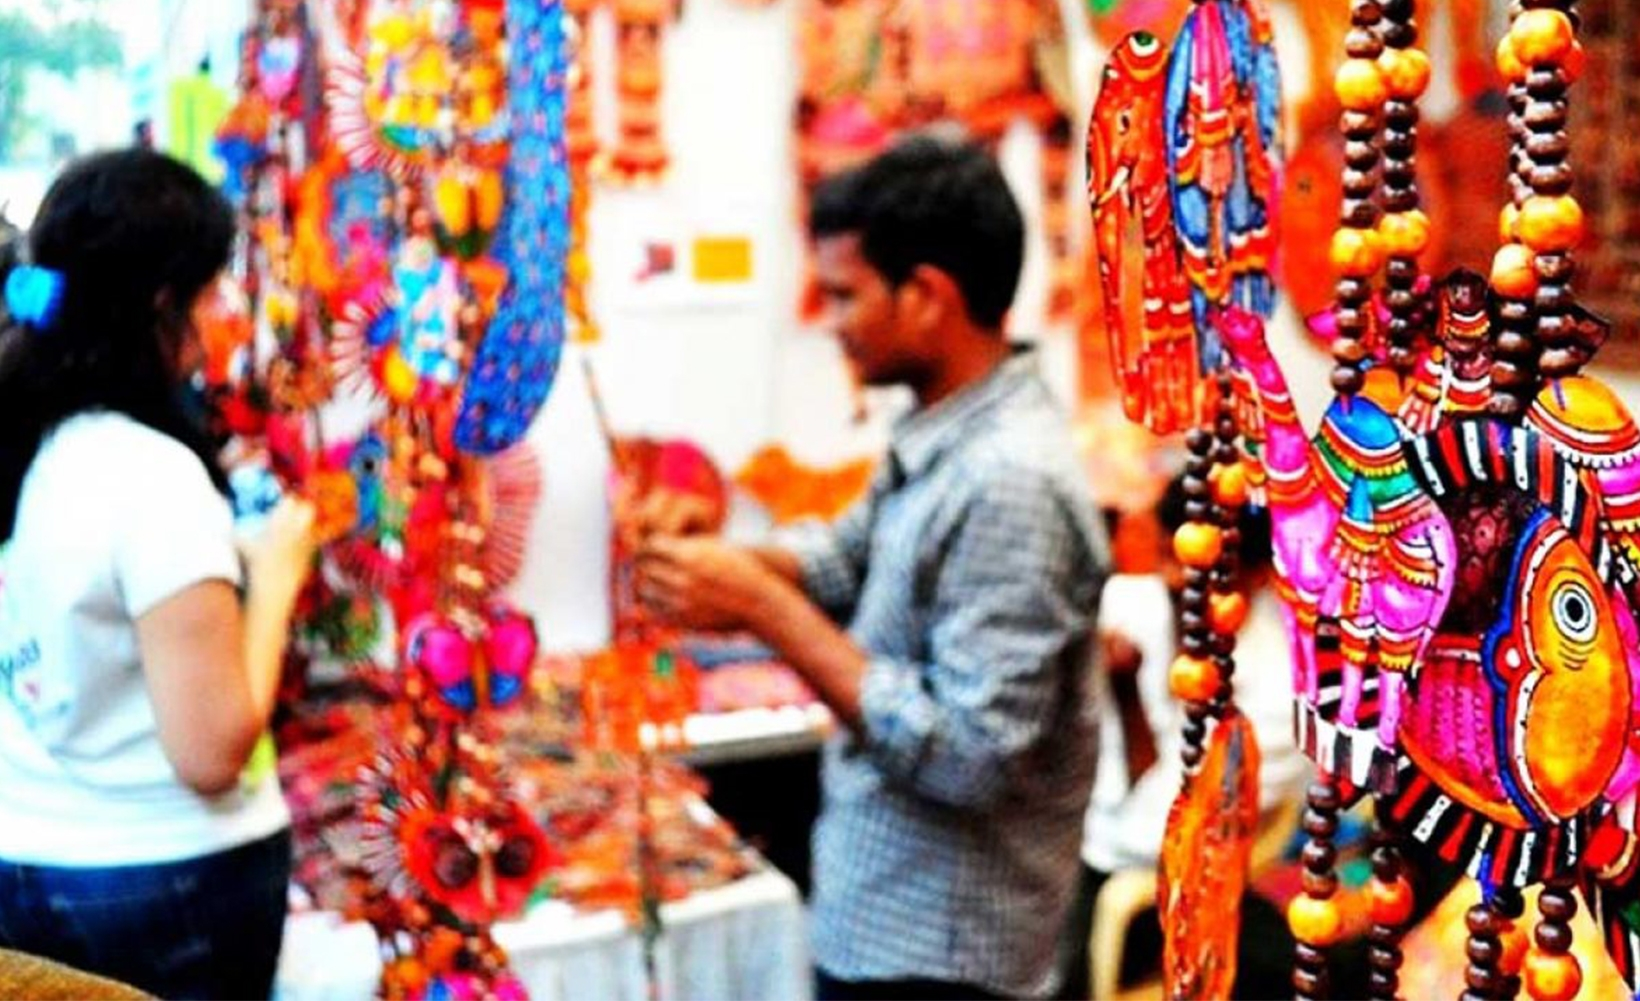 Shopping in India – To market, to market